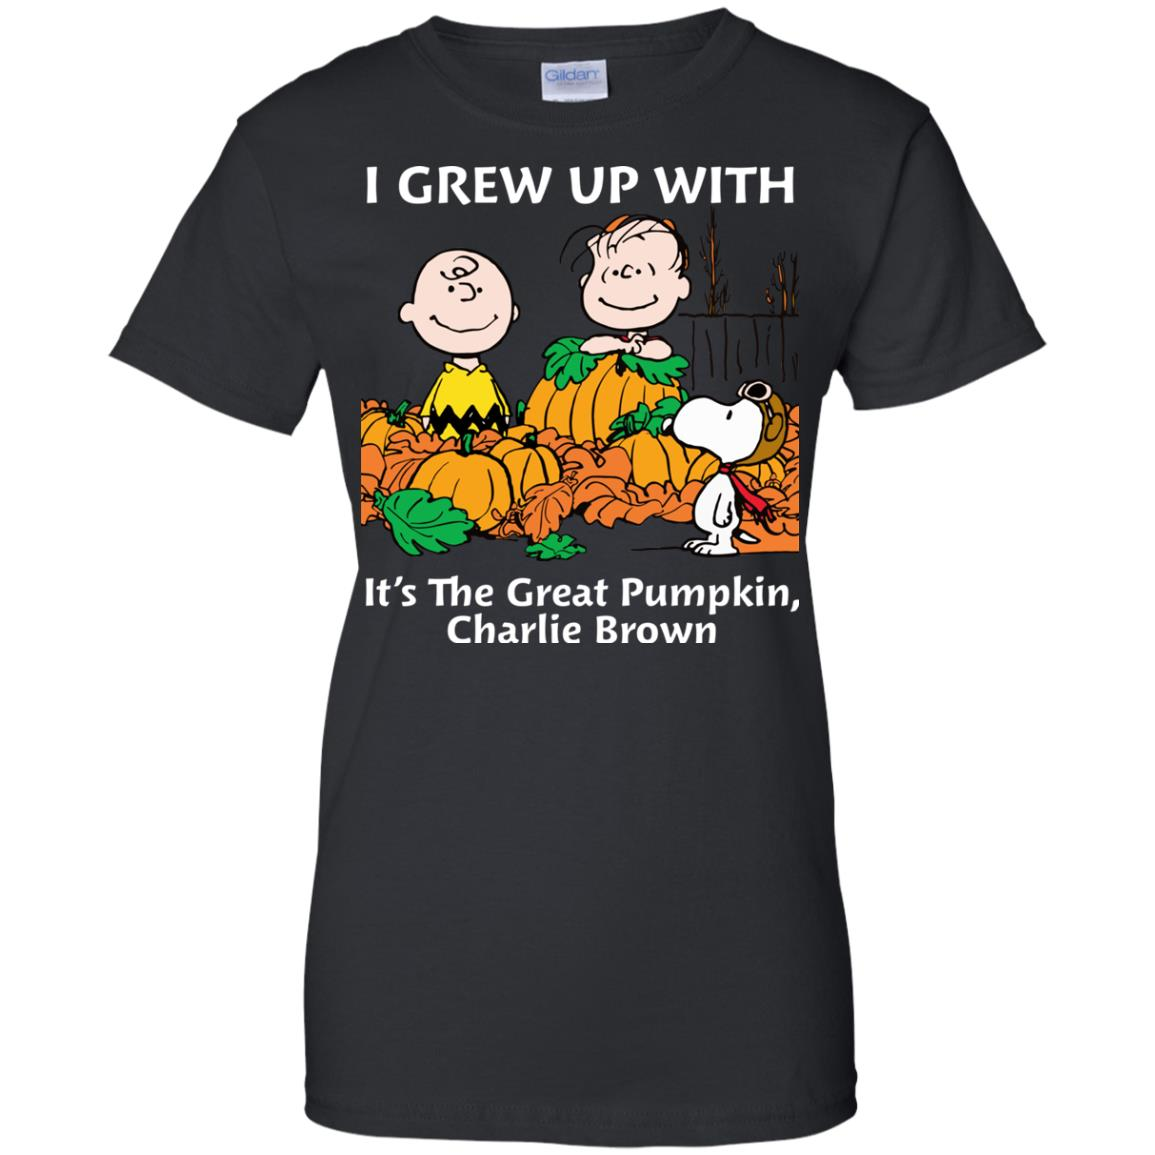 image 276 - Charlie Brown: I grew up with It's The Great Pumpkin shirt, sweater